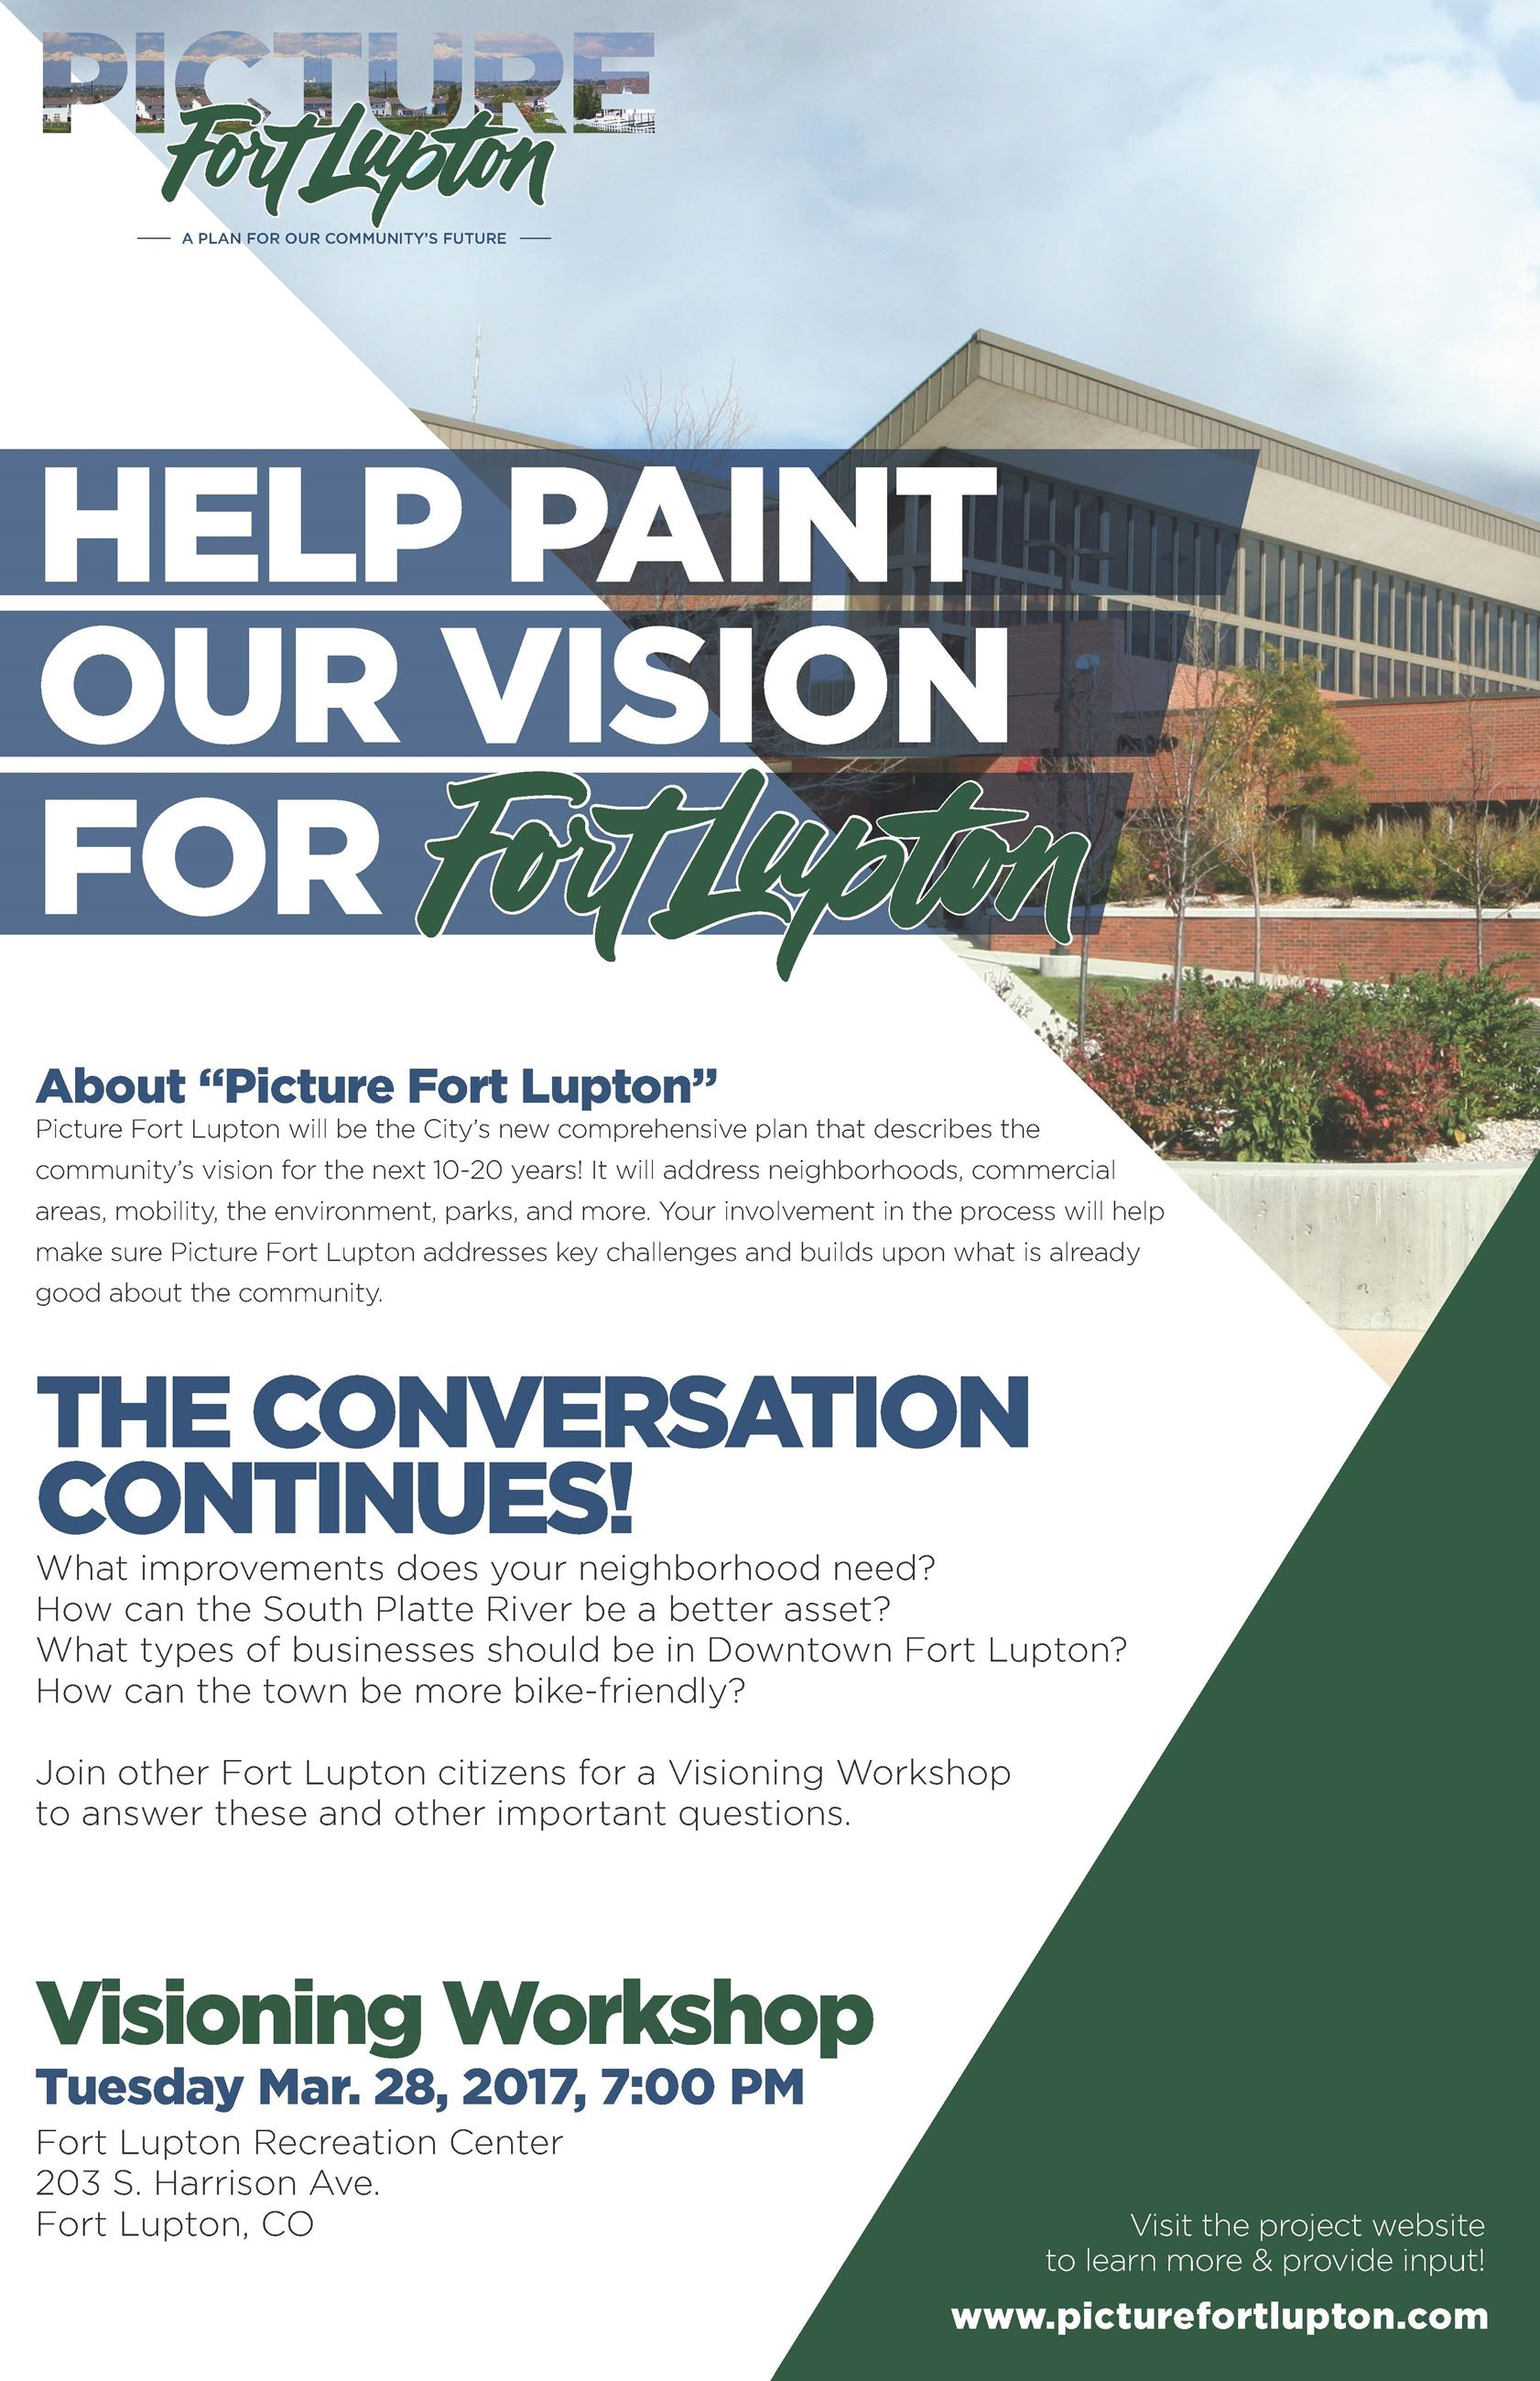 Fort Lupton Visioning Workshop Poster